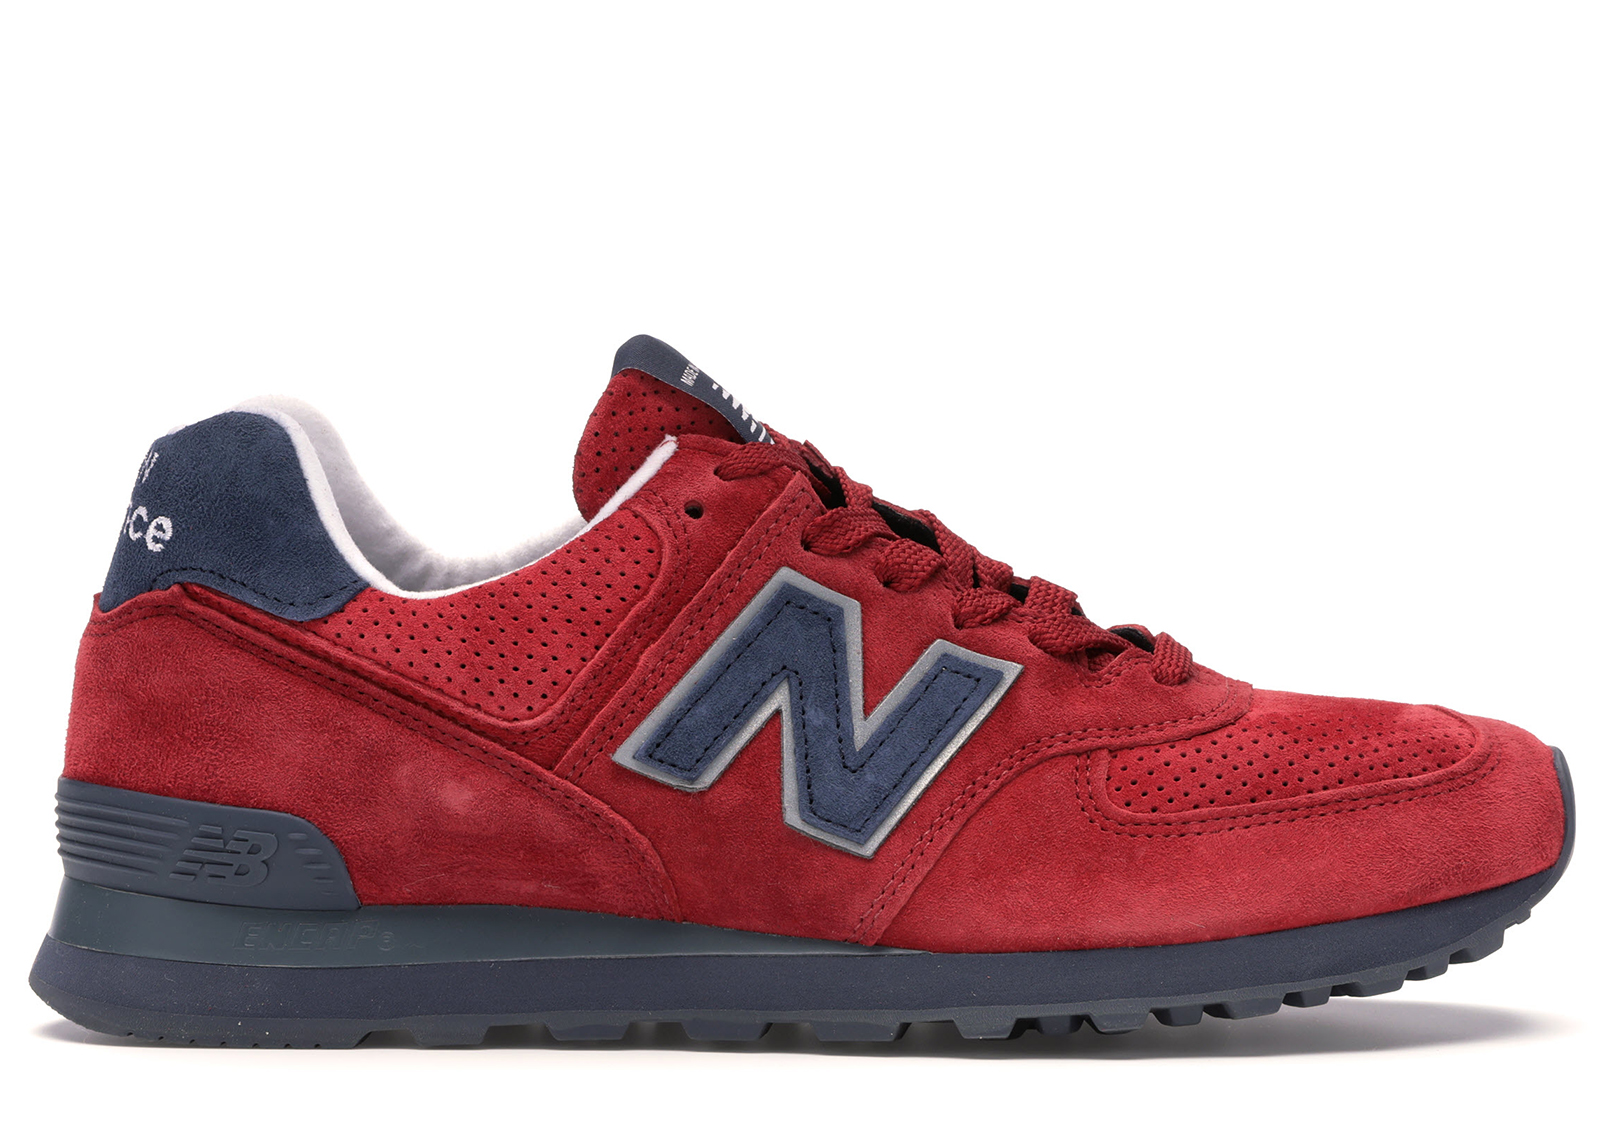 New Balance Classics Traditionnels Gym Red Navy - US574